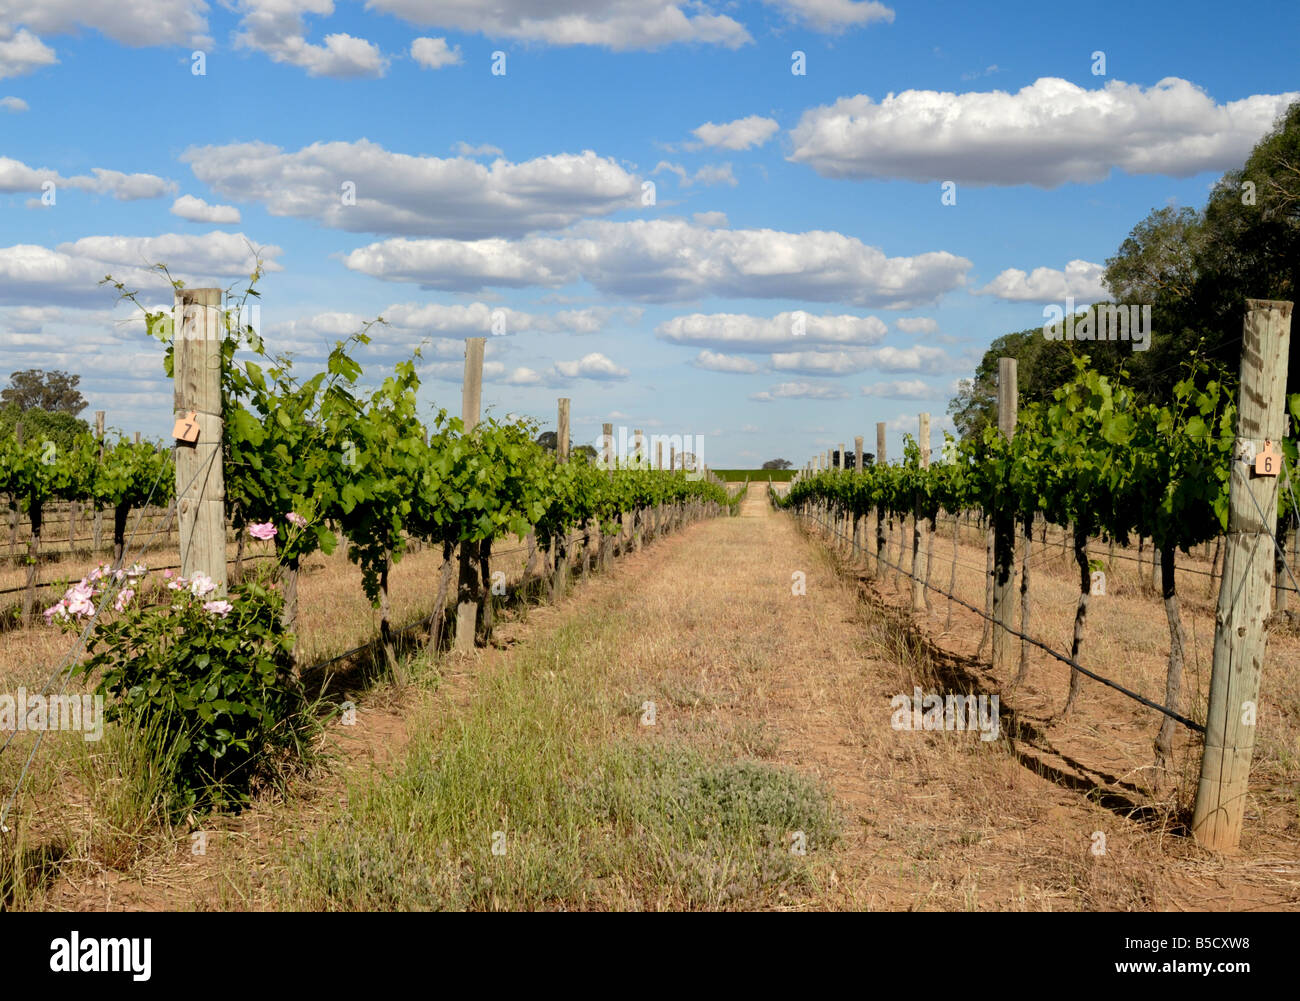 Panoramic view of a vineyard in Victoria, Australia in late afternoon Stock Photo